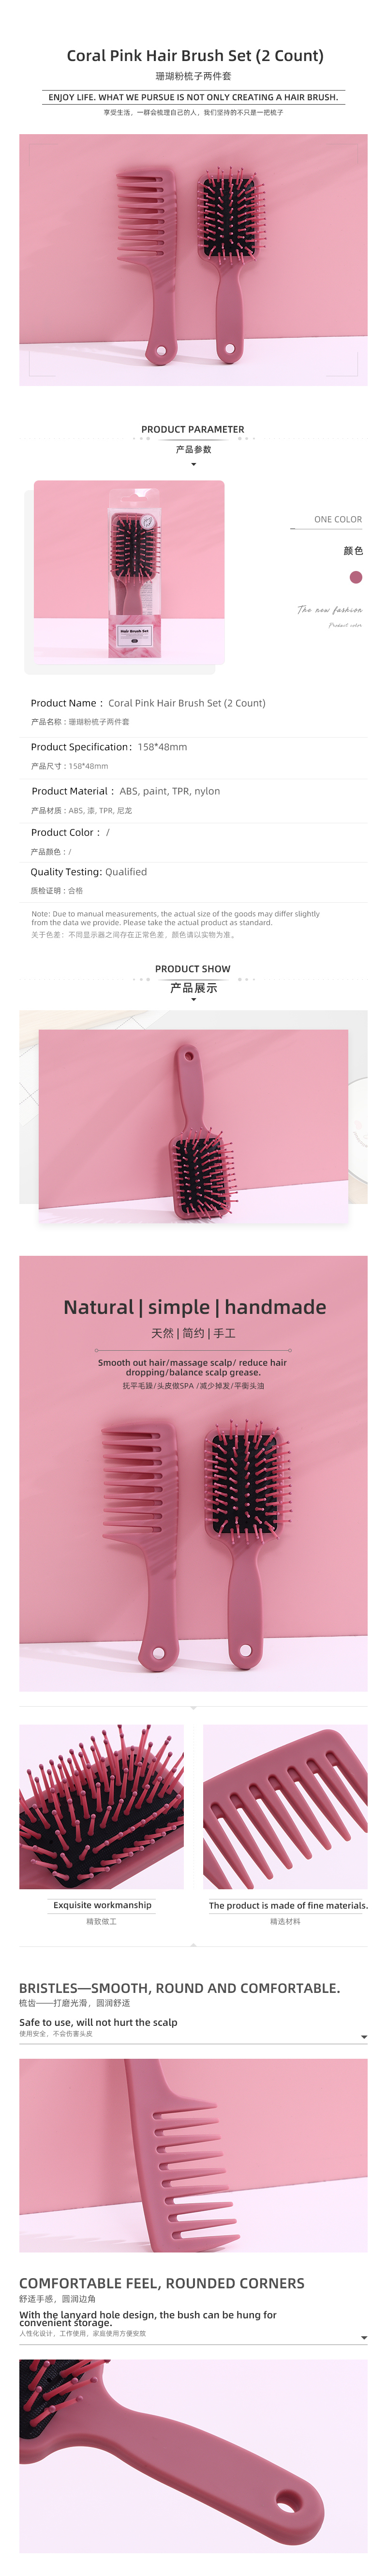 Coral Pink Hair Brush Set (2 Count)